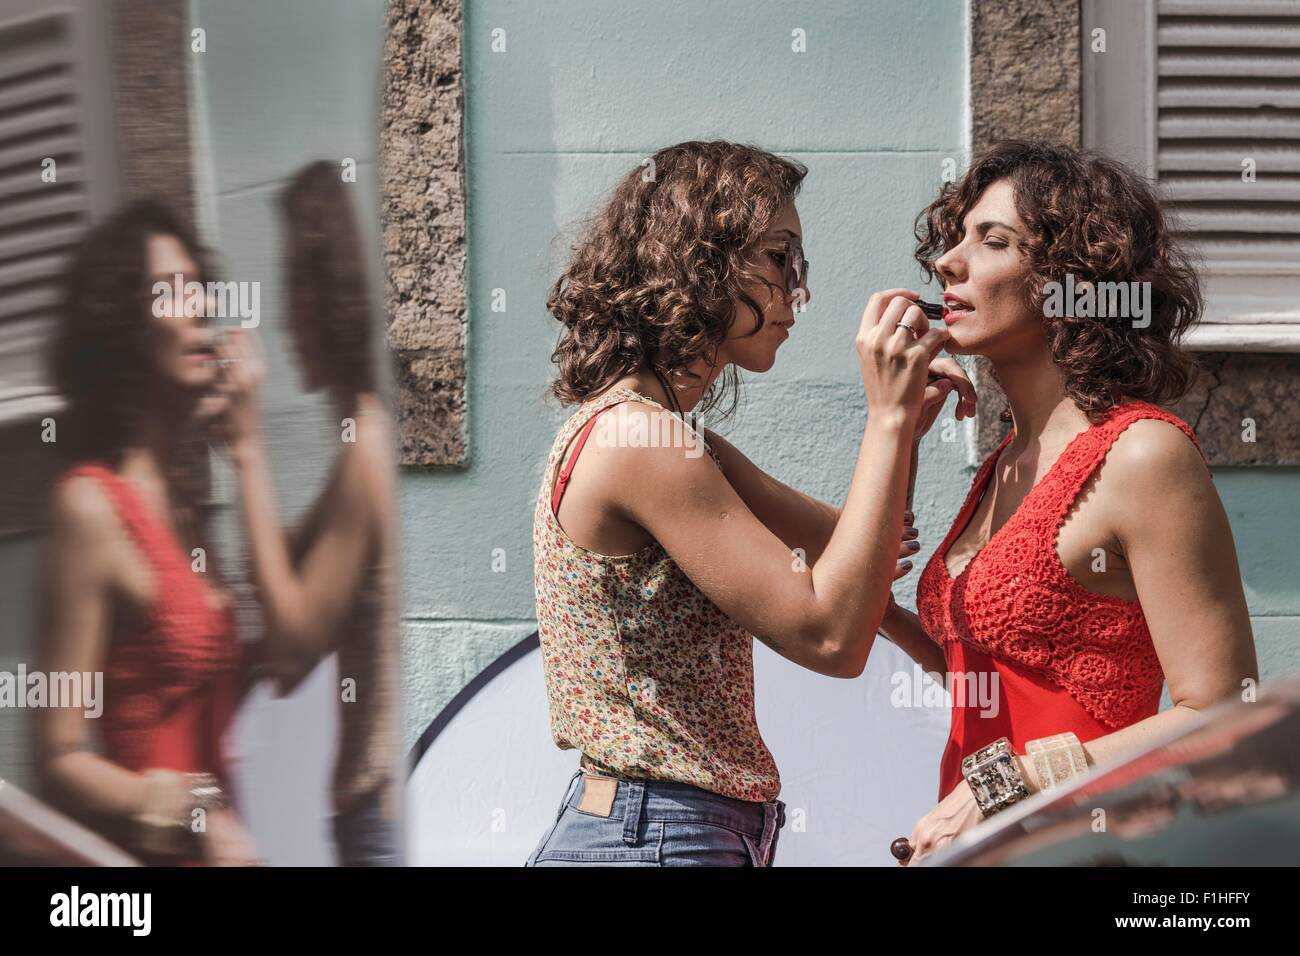 Behind the scenes of an urban fashion shoot with make up artist applying lipstick to model - Stock Image